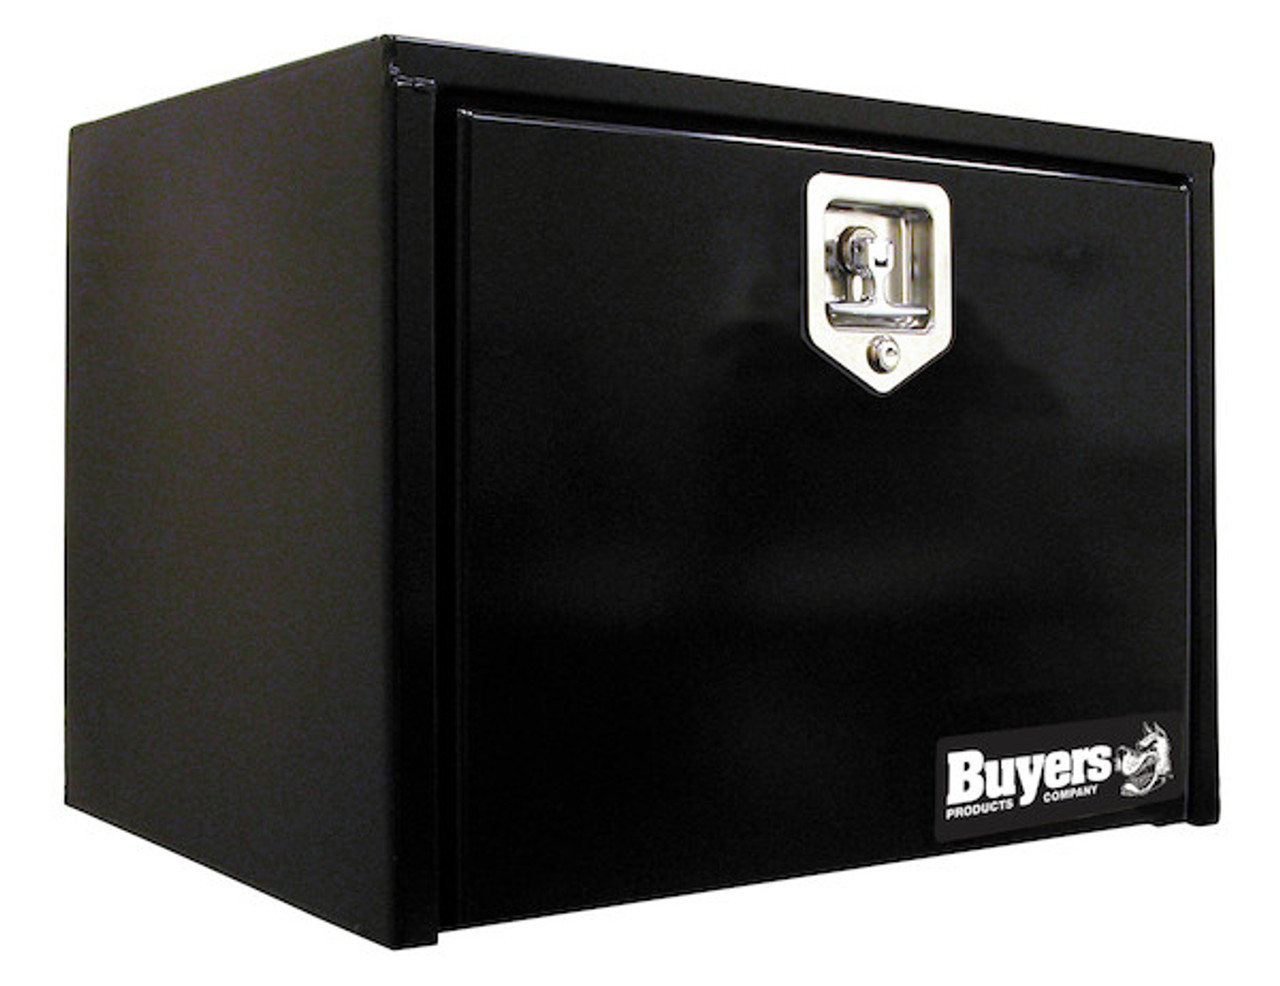 """1704300 BUYERS PRODUCTS BLACK STEEL UNDERBODY TRUCK TOOLBOX WITH T-LATCH 24""""HX24""""DX24""""W"""